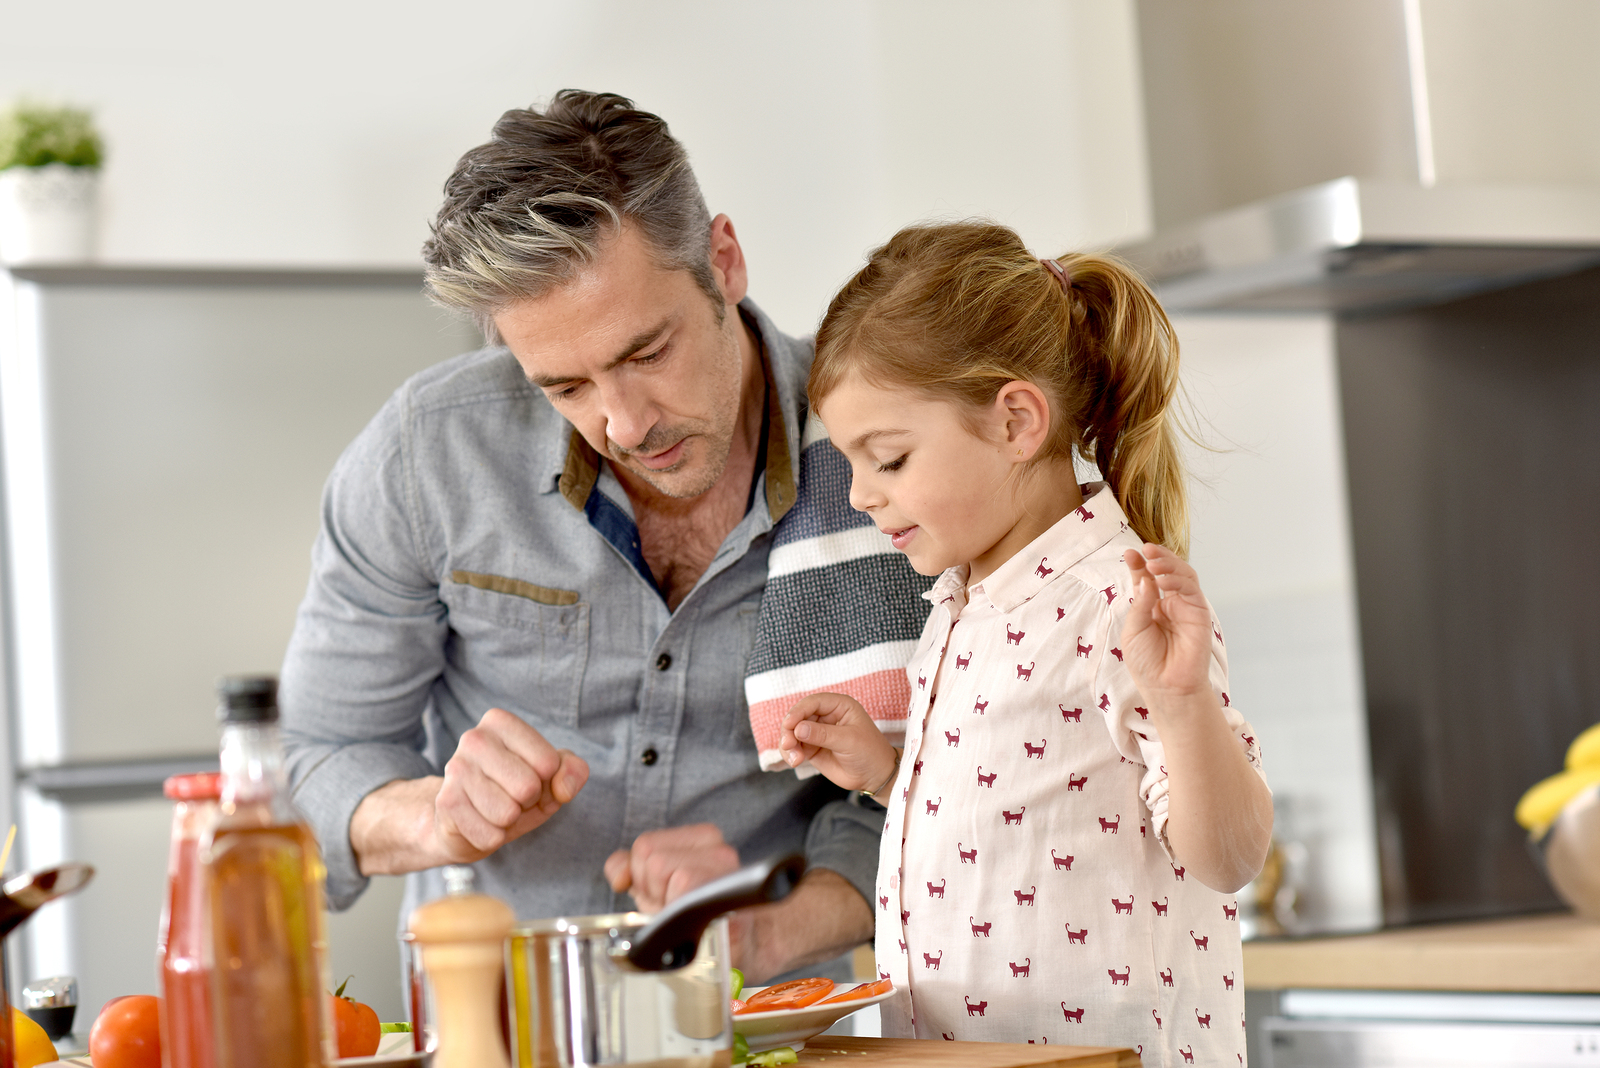 bigstock-Father-with-little-girl-cookin-122791091